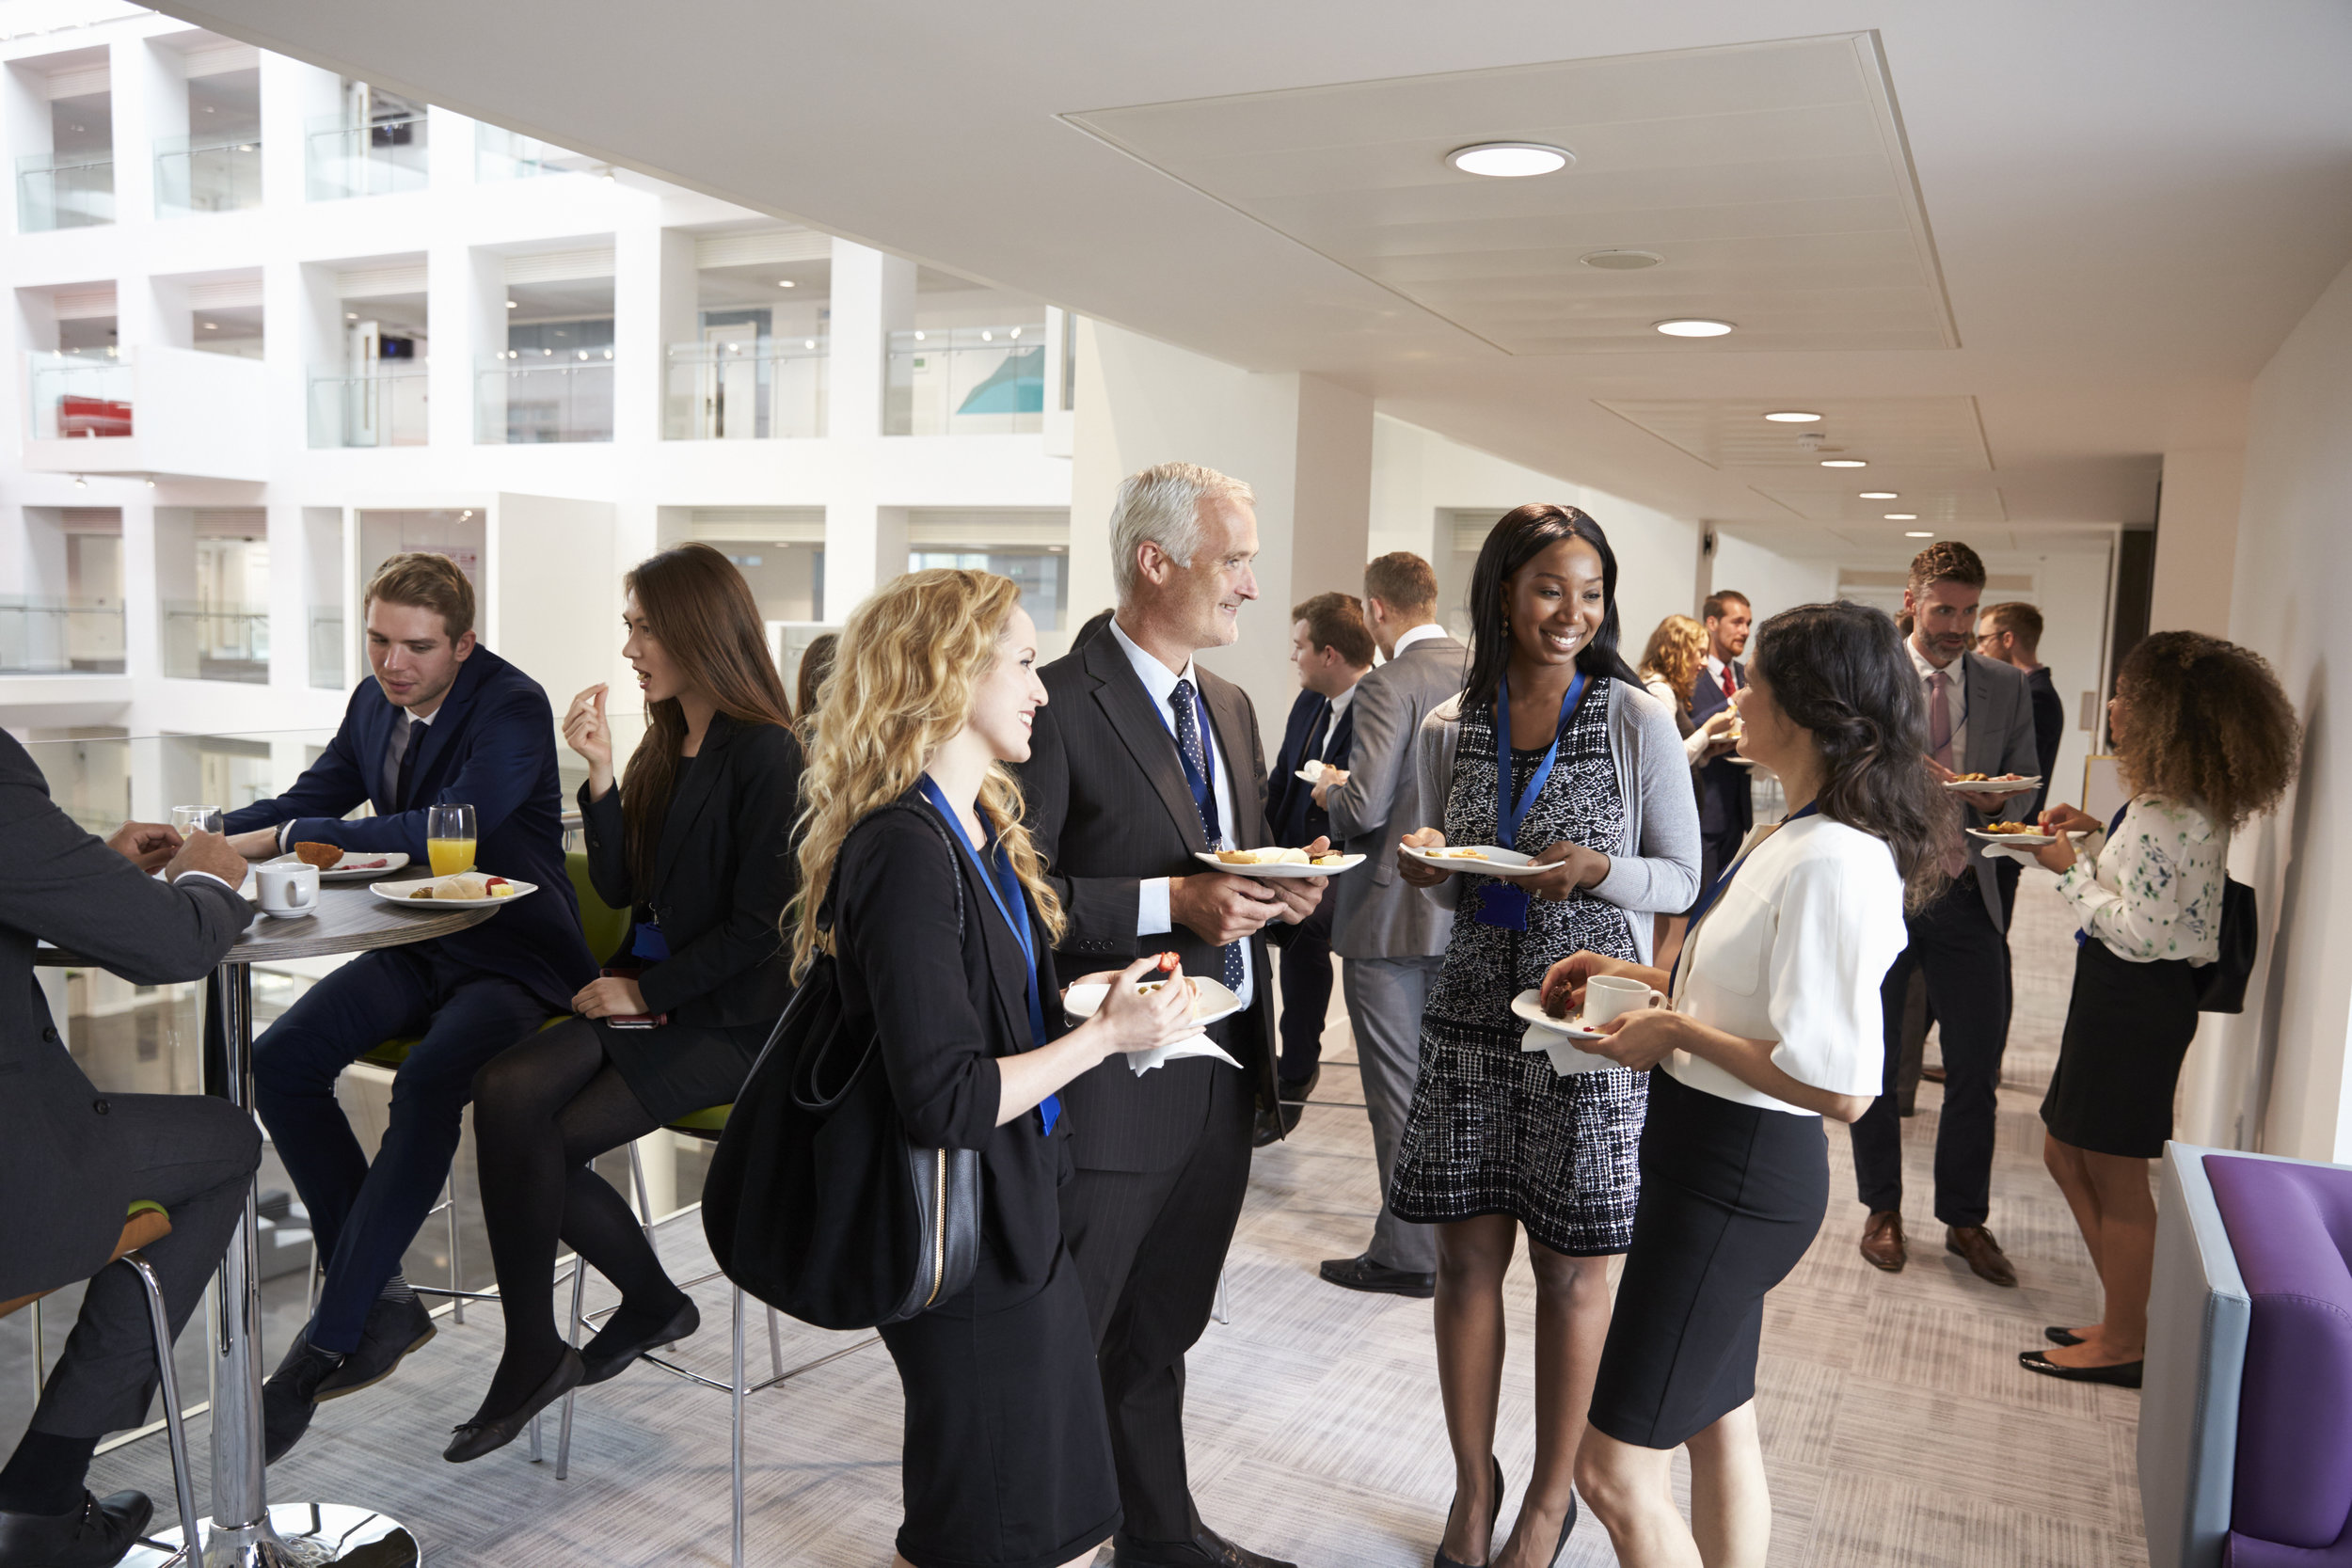 delegates-networking-during-conference-lunch-PTQSYZV.jpg